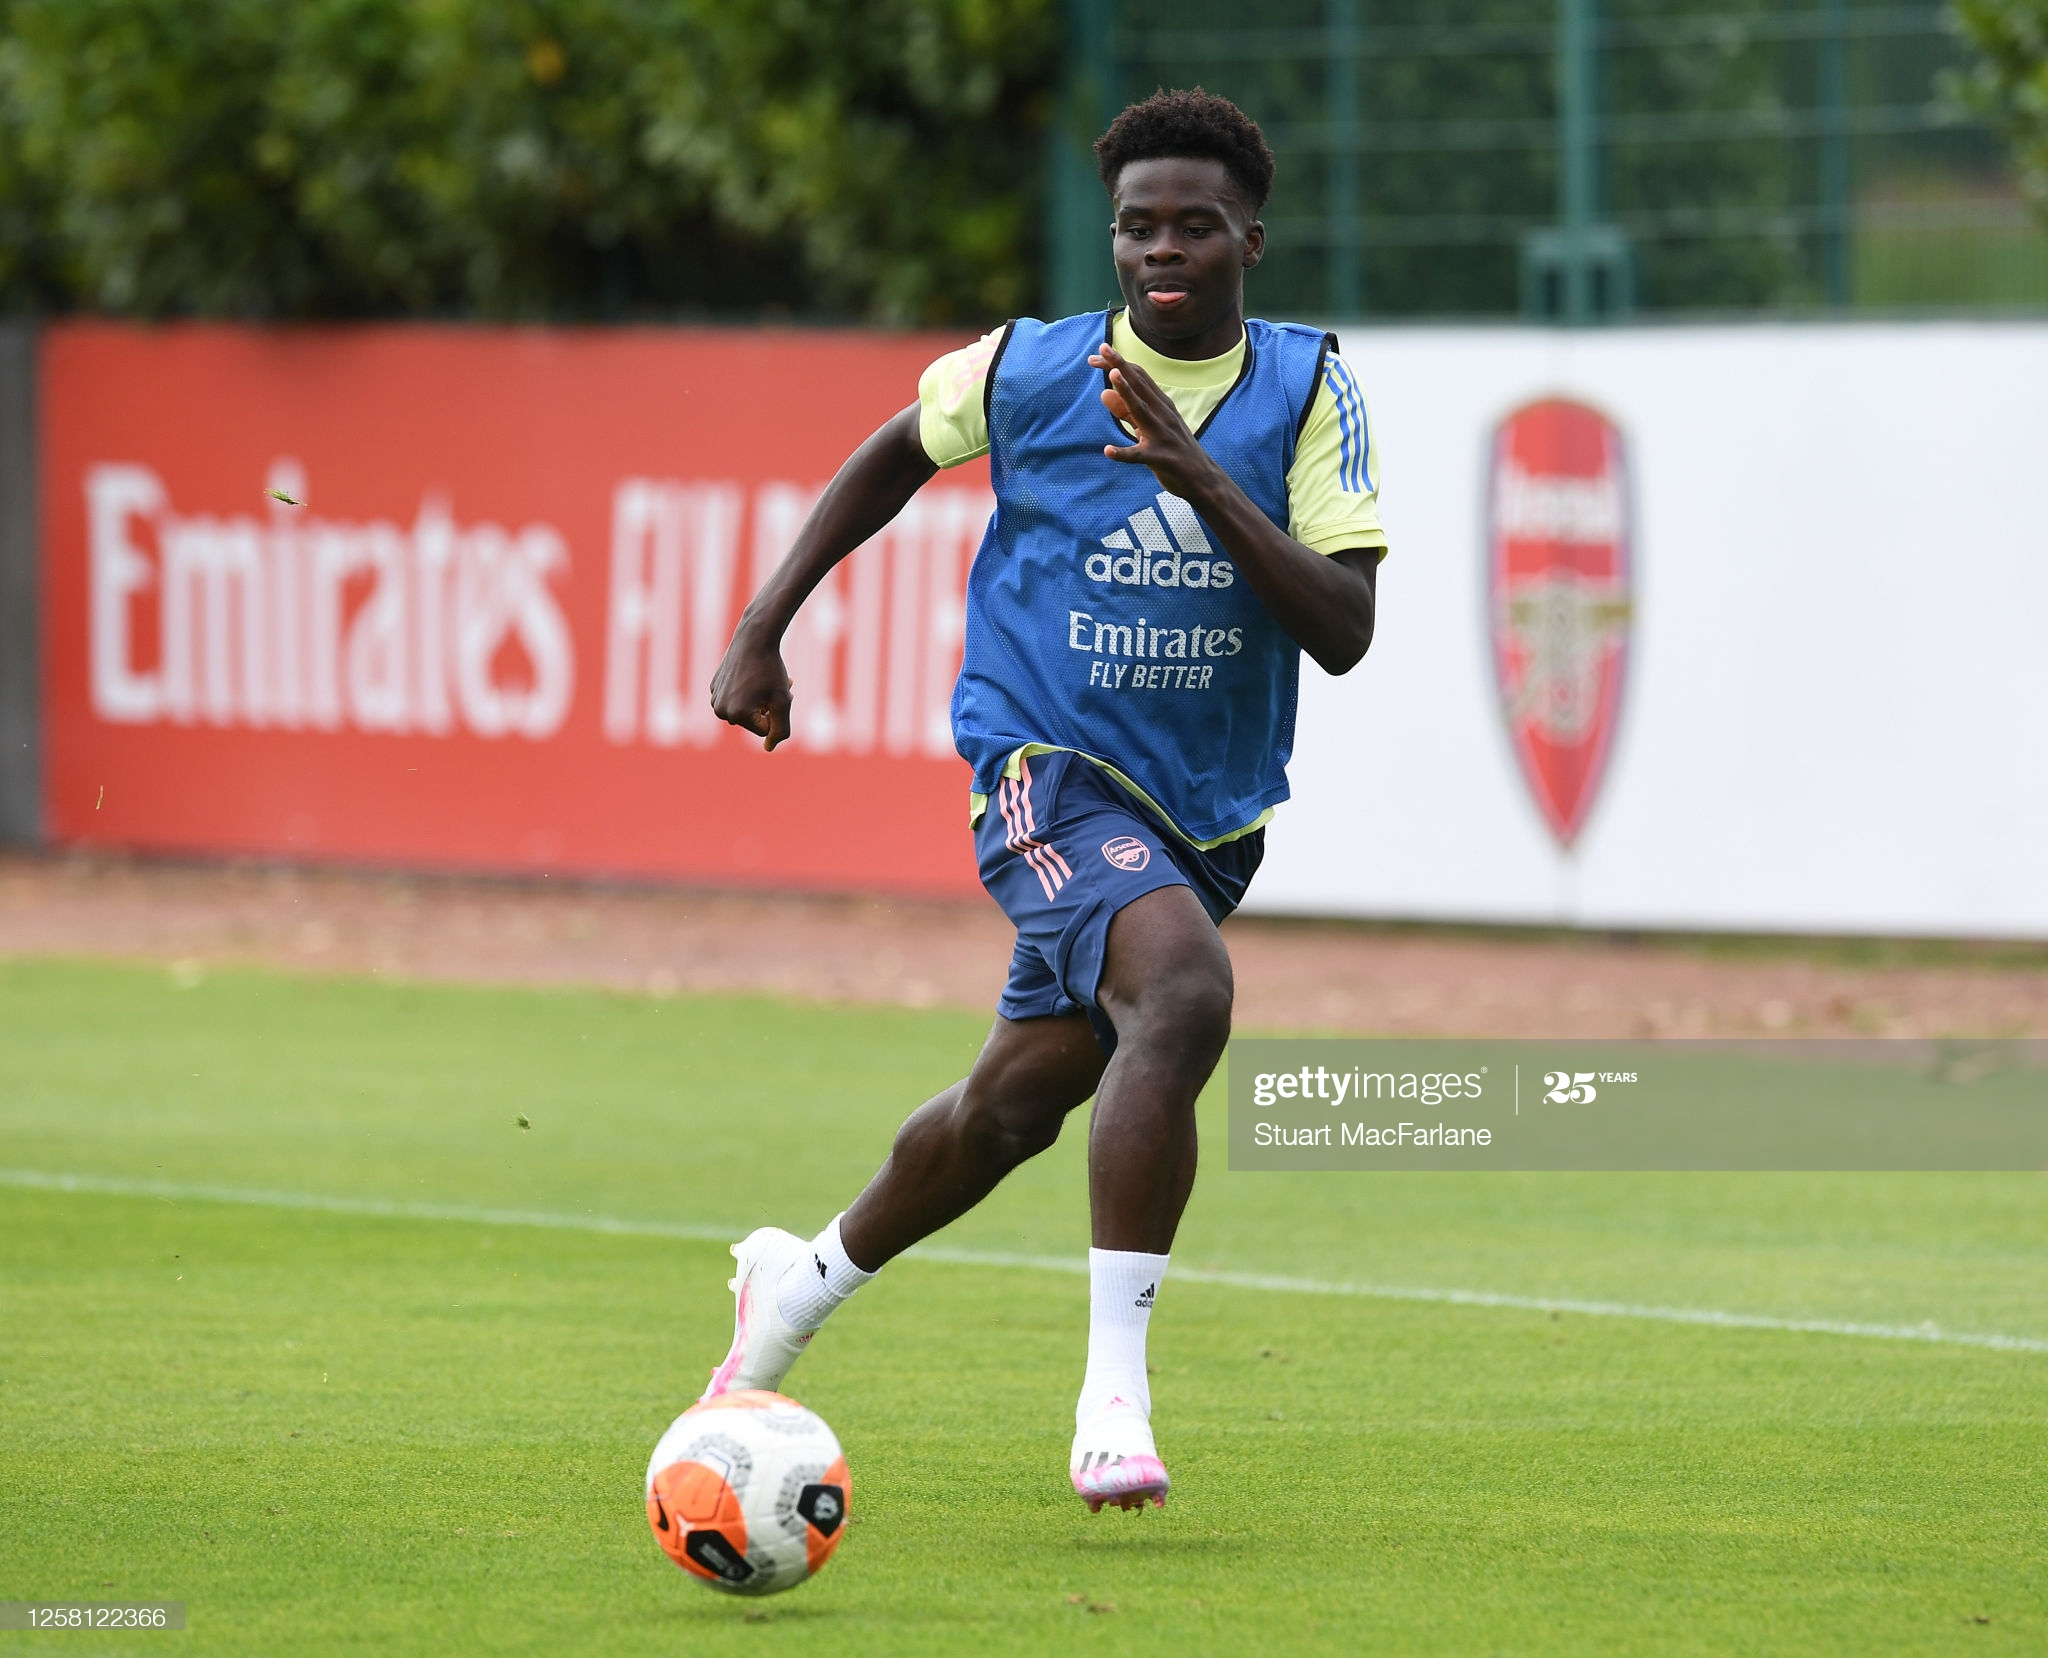 Gareth Southgate to make crucial Bukayo Saka National team decision